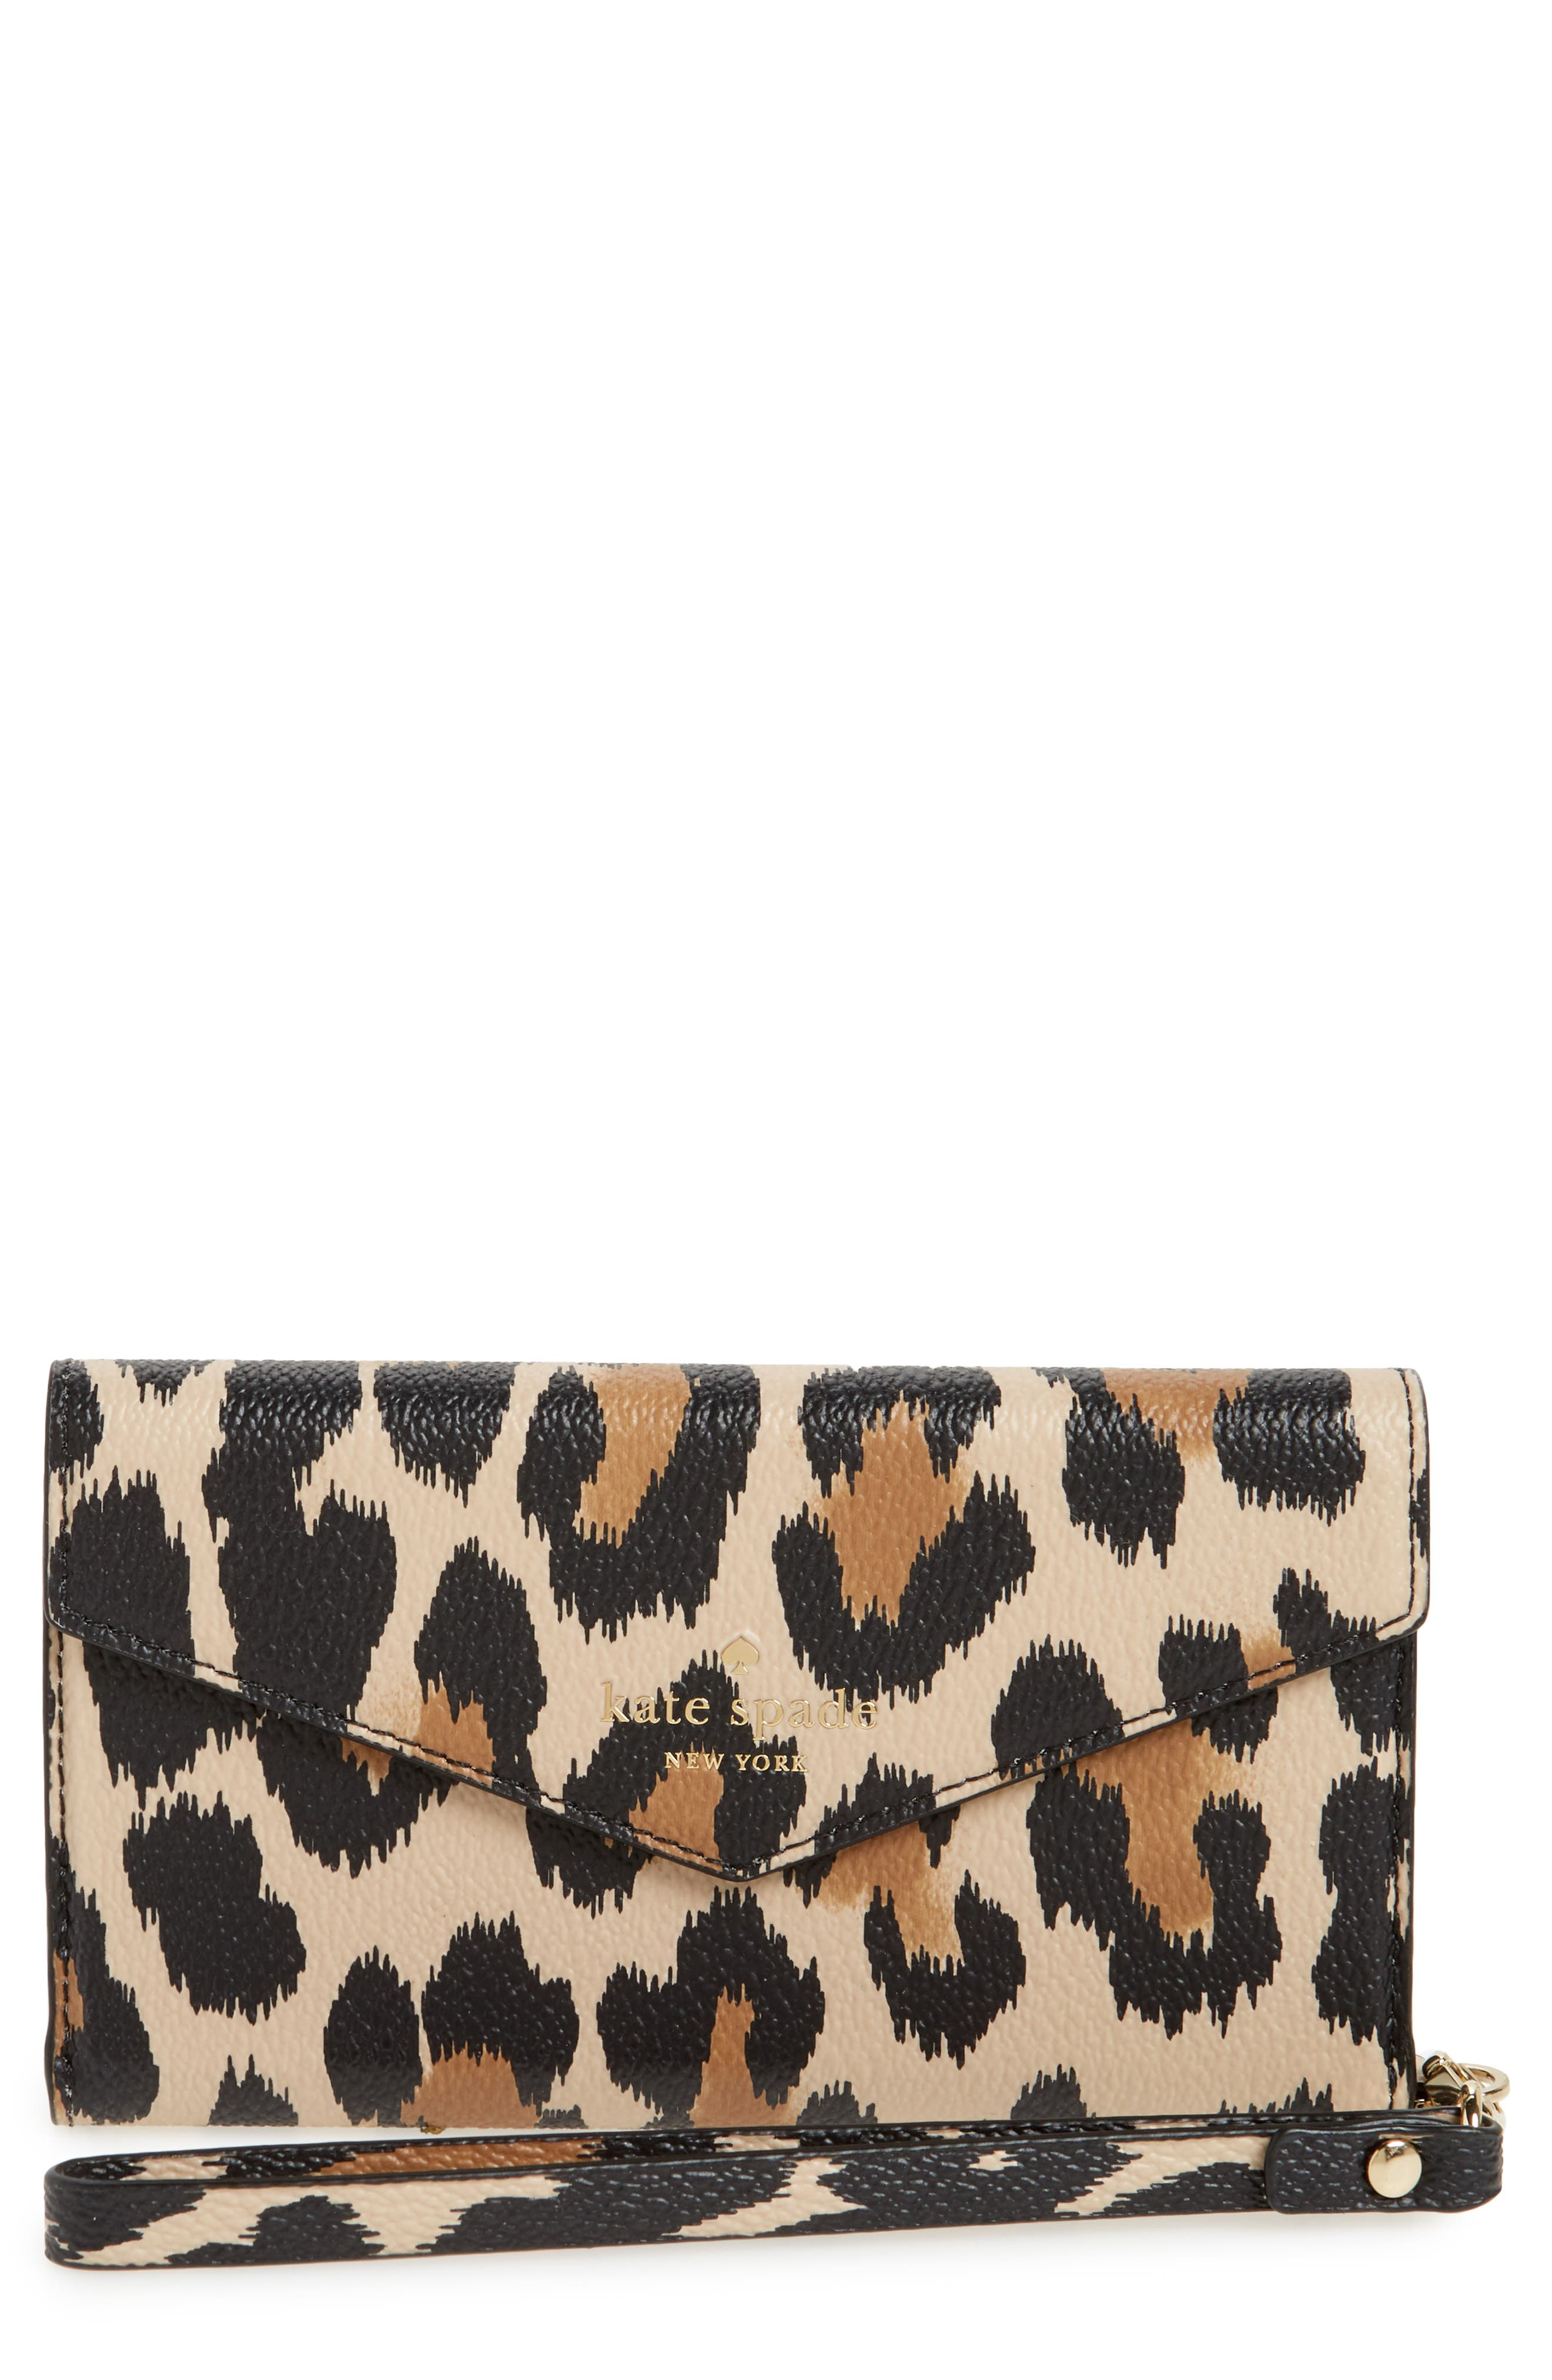 kate spade new york leopard print faux leather iPhone wristlet